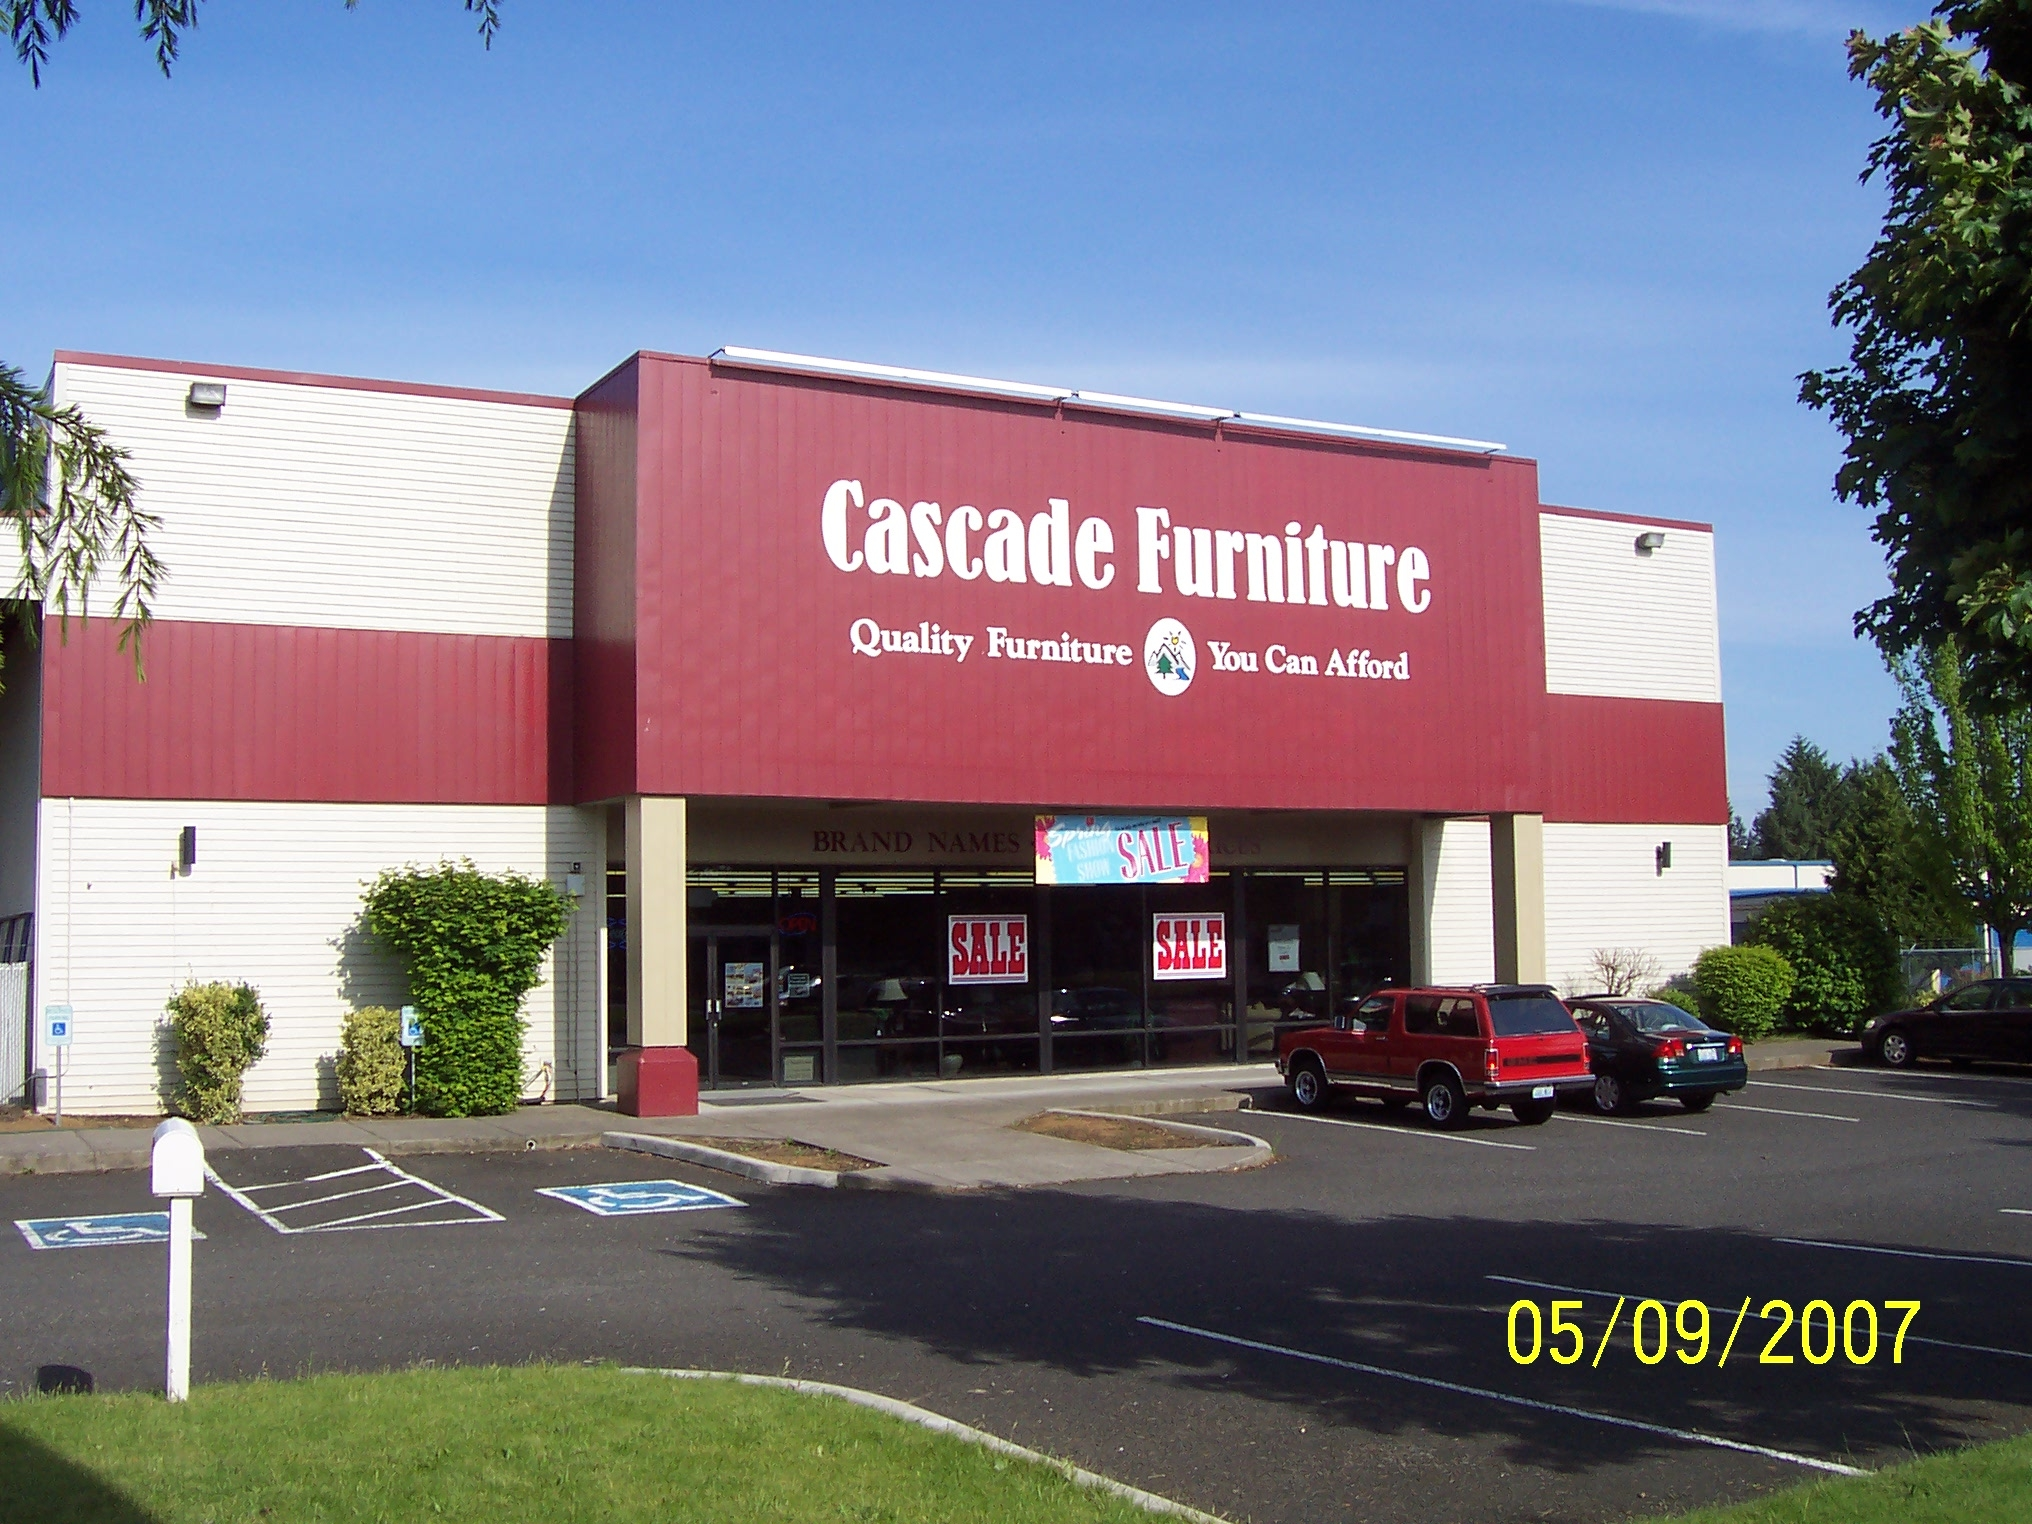 Wholesale Furniture Brokers Signs Cascade Furniture To Serve